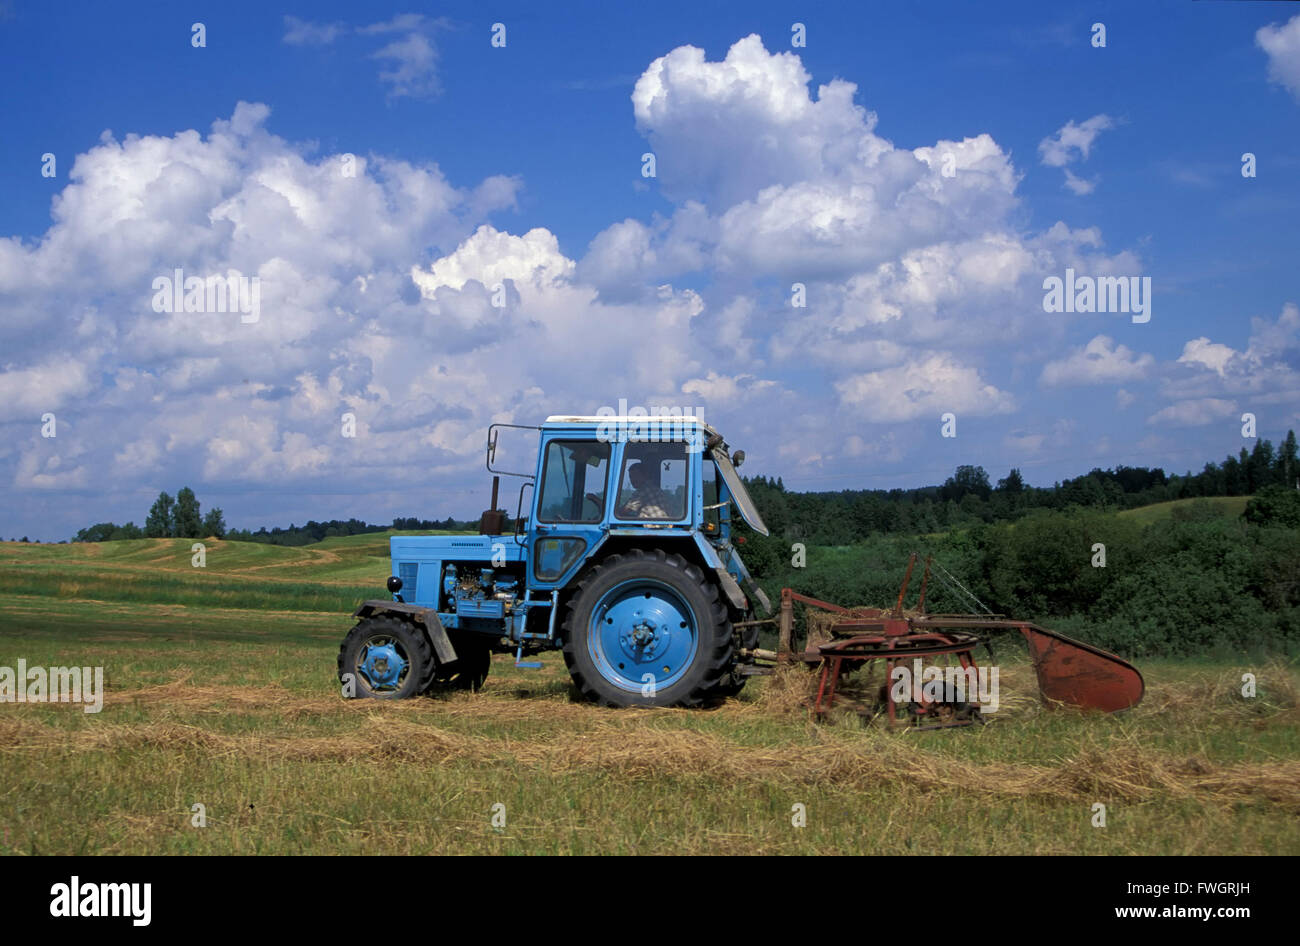 Tractor at work, Estonia, Europe - Stock Image